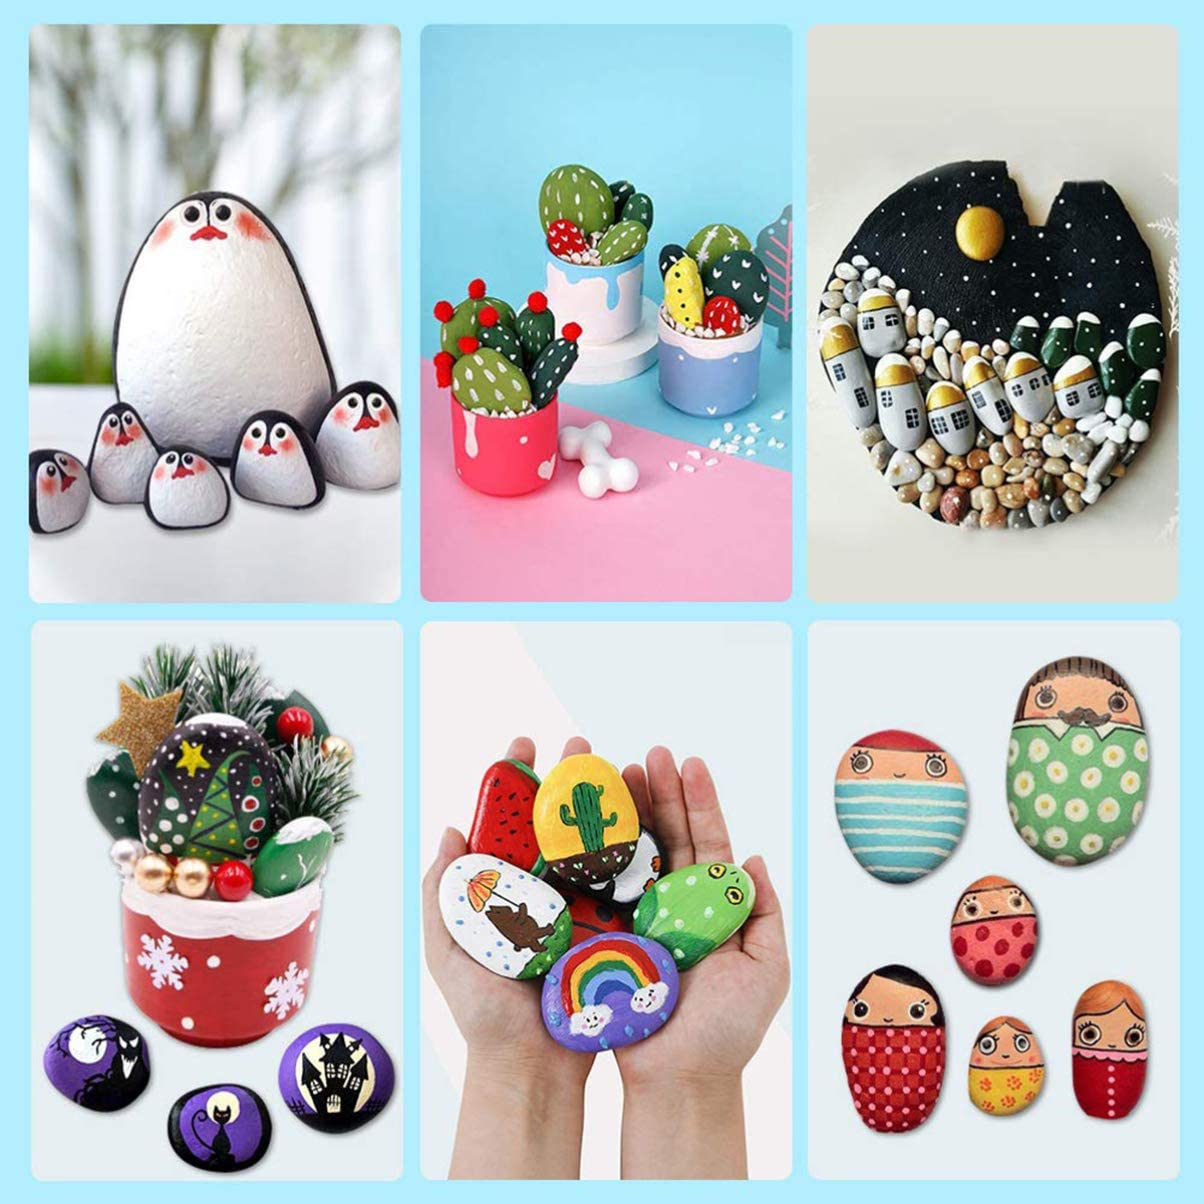 HEALLILY 10PCS Painting Rocks Smooth Stone with 1 Pc Bracket for Painting Kindness Rocks for Painting Crafts Natural Smooth Surface Rock Painting Arts 2-3cm